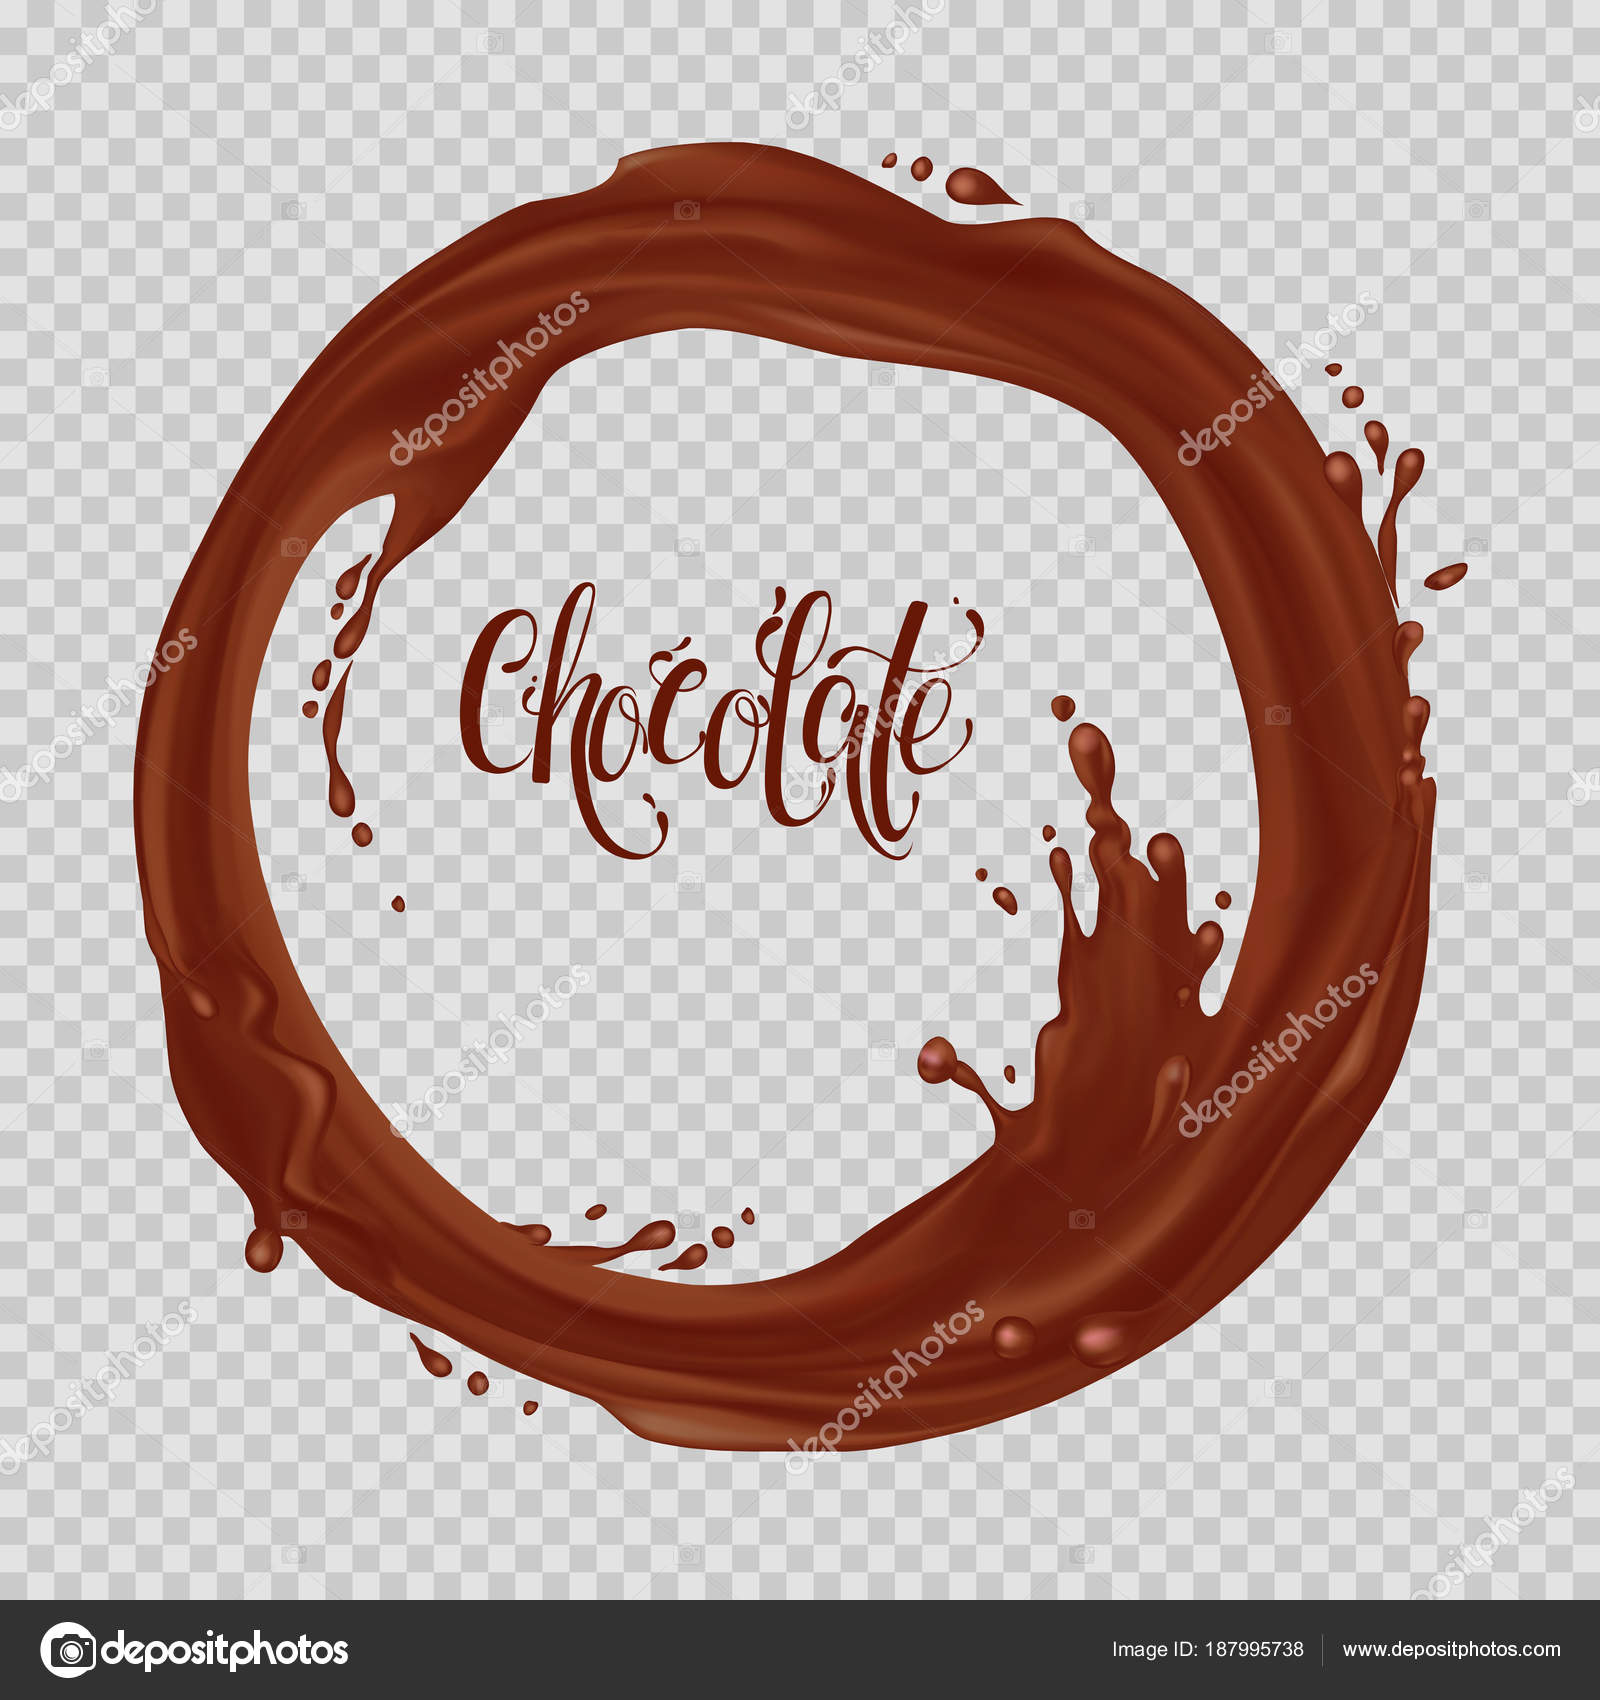 chocolate flowing circle realistic falling drops splash isolated transparent background stock vector c ragneda 187995738 https depositphotos com 187995738 stock illustration chocolate flowing circle realistic falling html